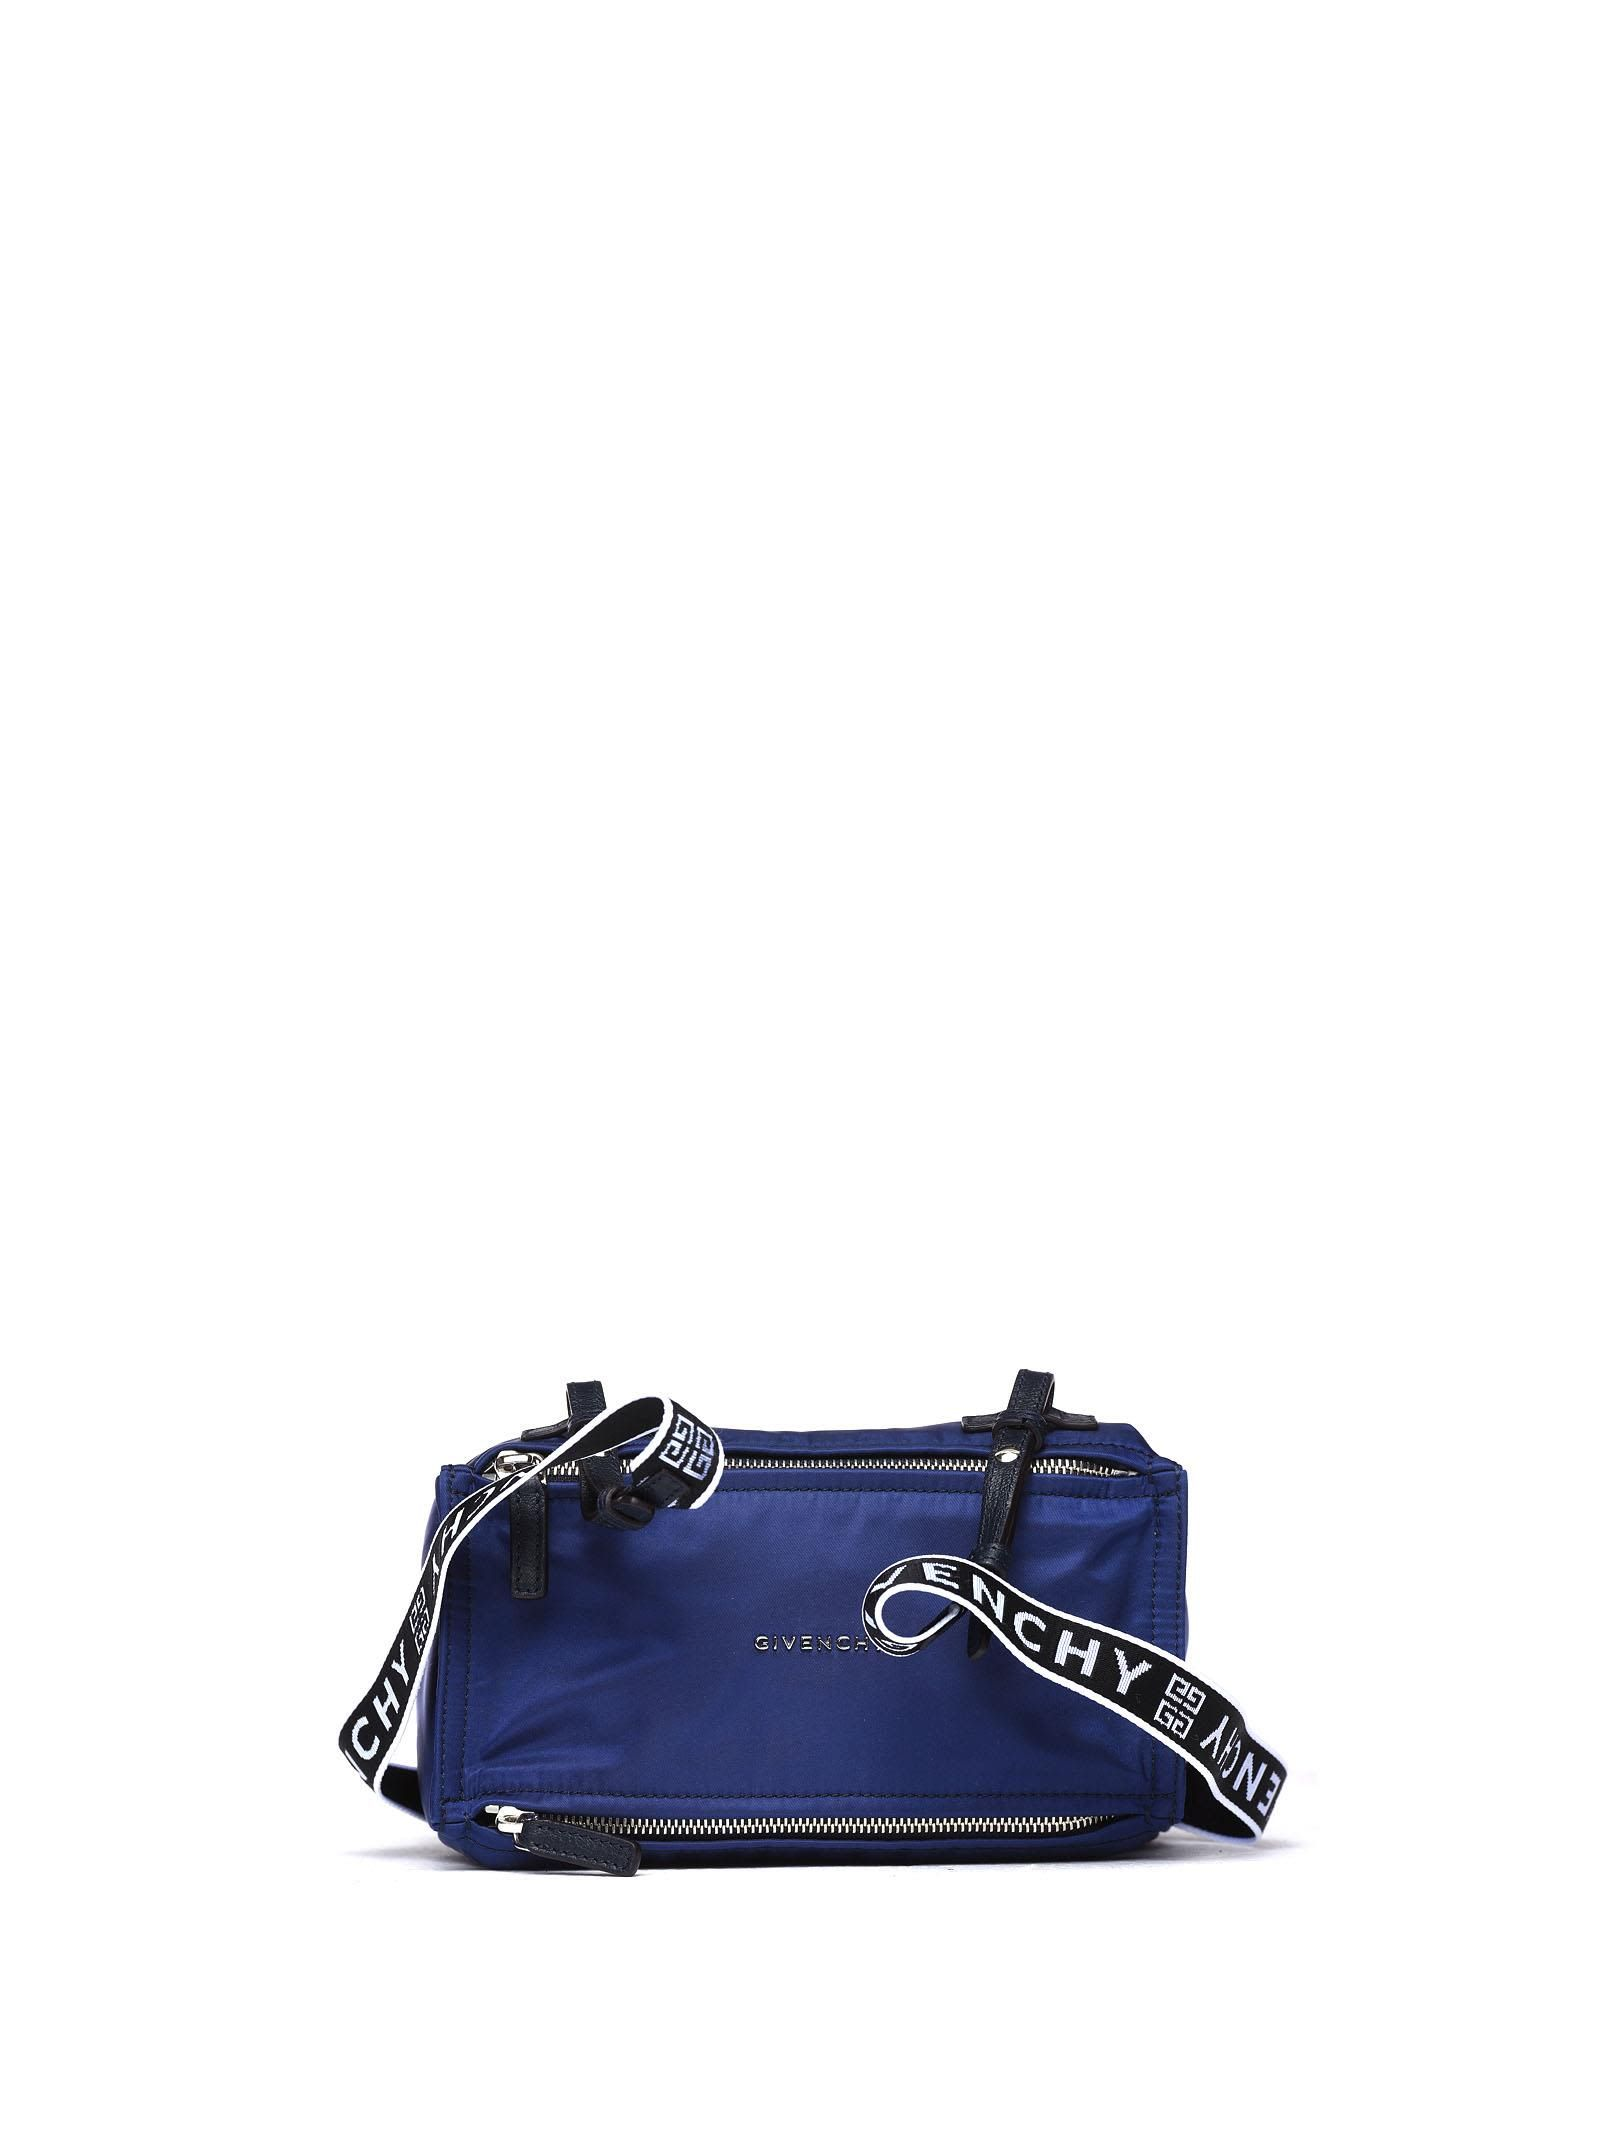 5bcd3e84ba56 GIVENCHY PANDORA MINI 4G HANDLE BAG IN BLUE NYLON AND LEATHER.  givenchy   bags  shoulder bags  hand bags  nylon  leather. Find this ...